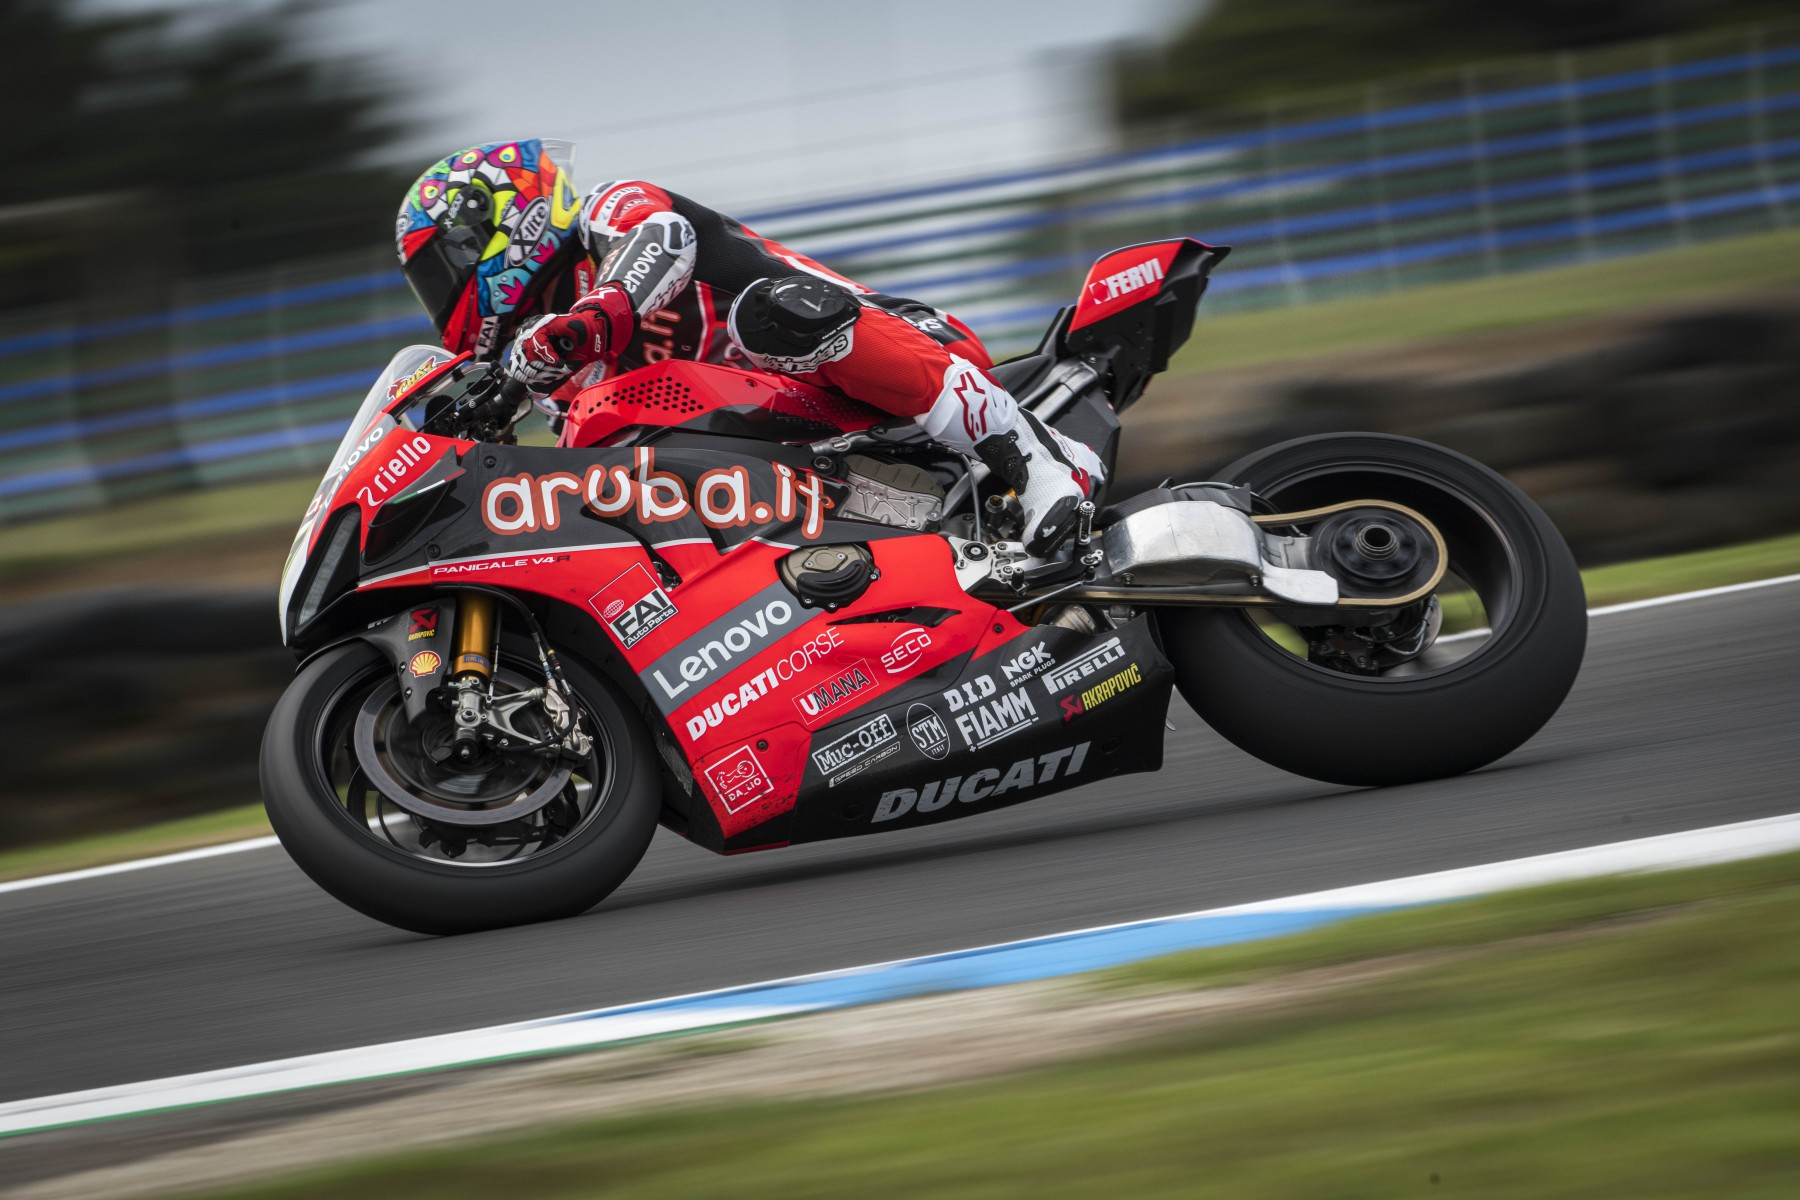 SBK 2020: As Ducati prontas